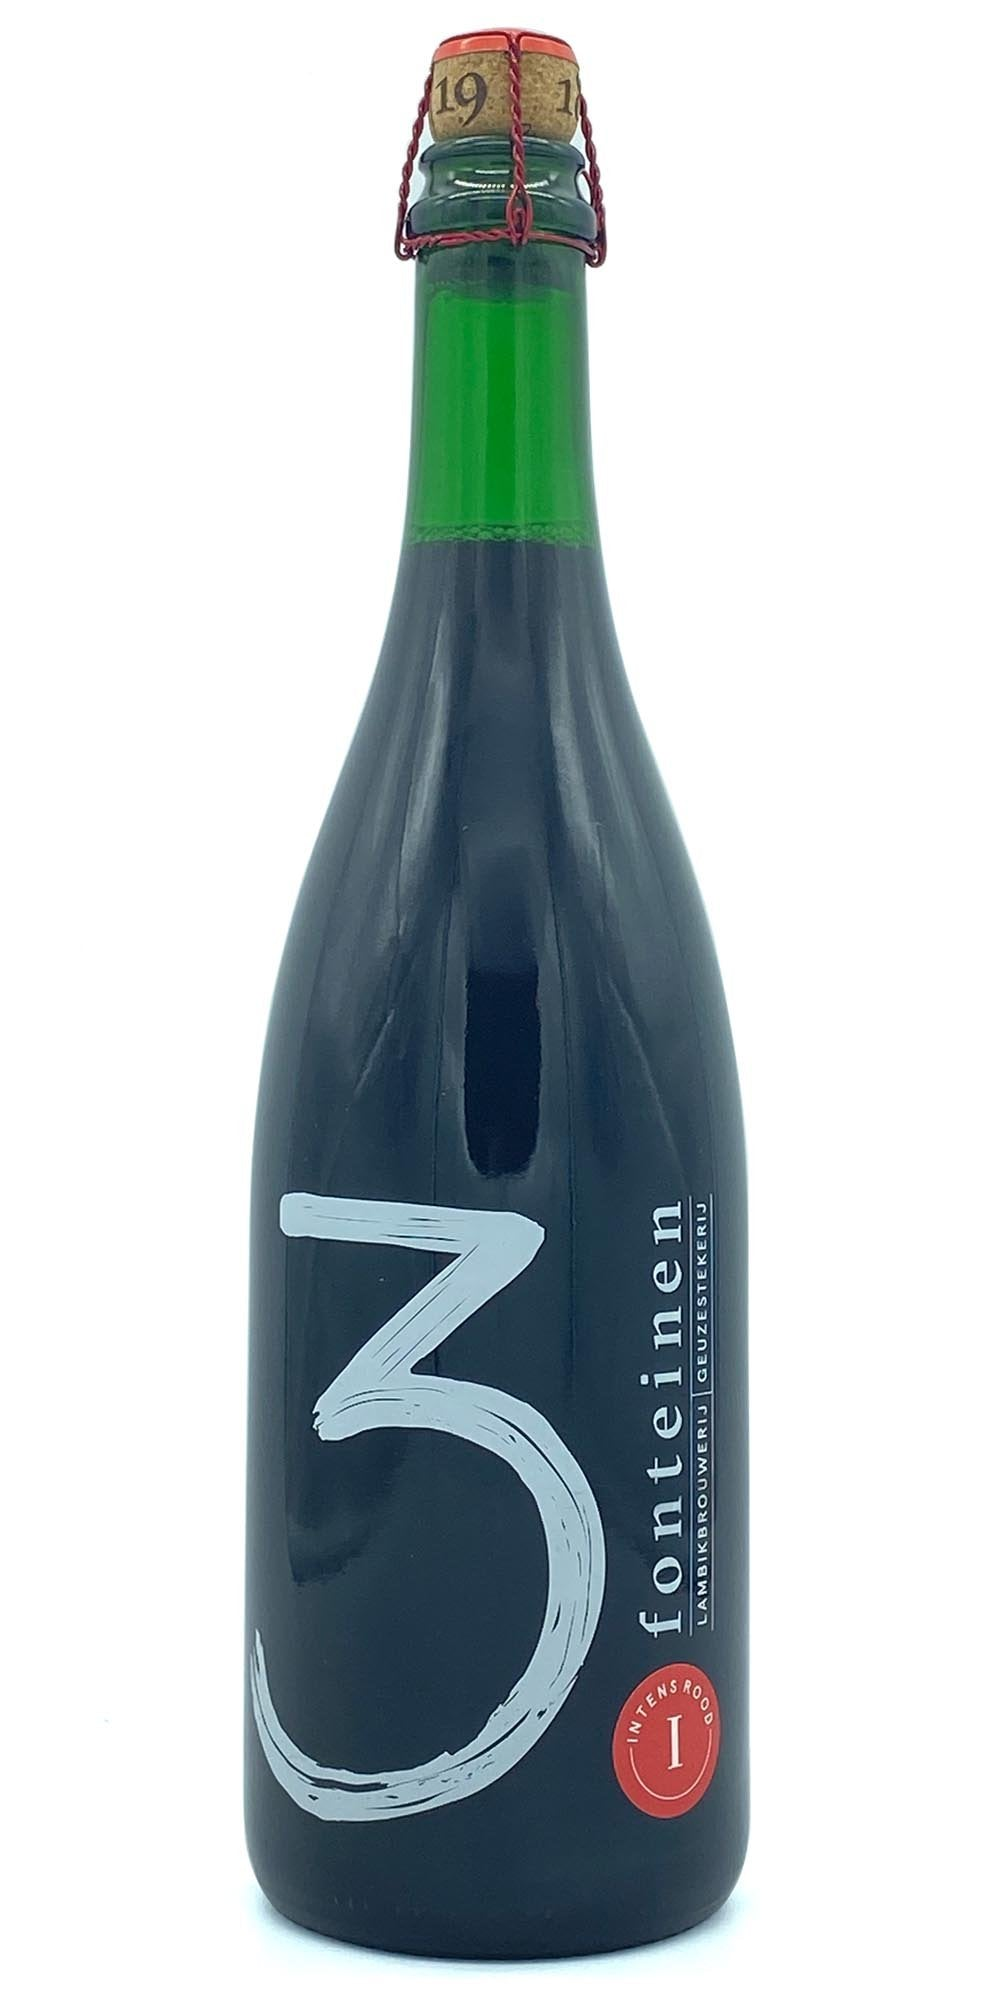 3 Fonteinen - Intense Red #112 2019